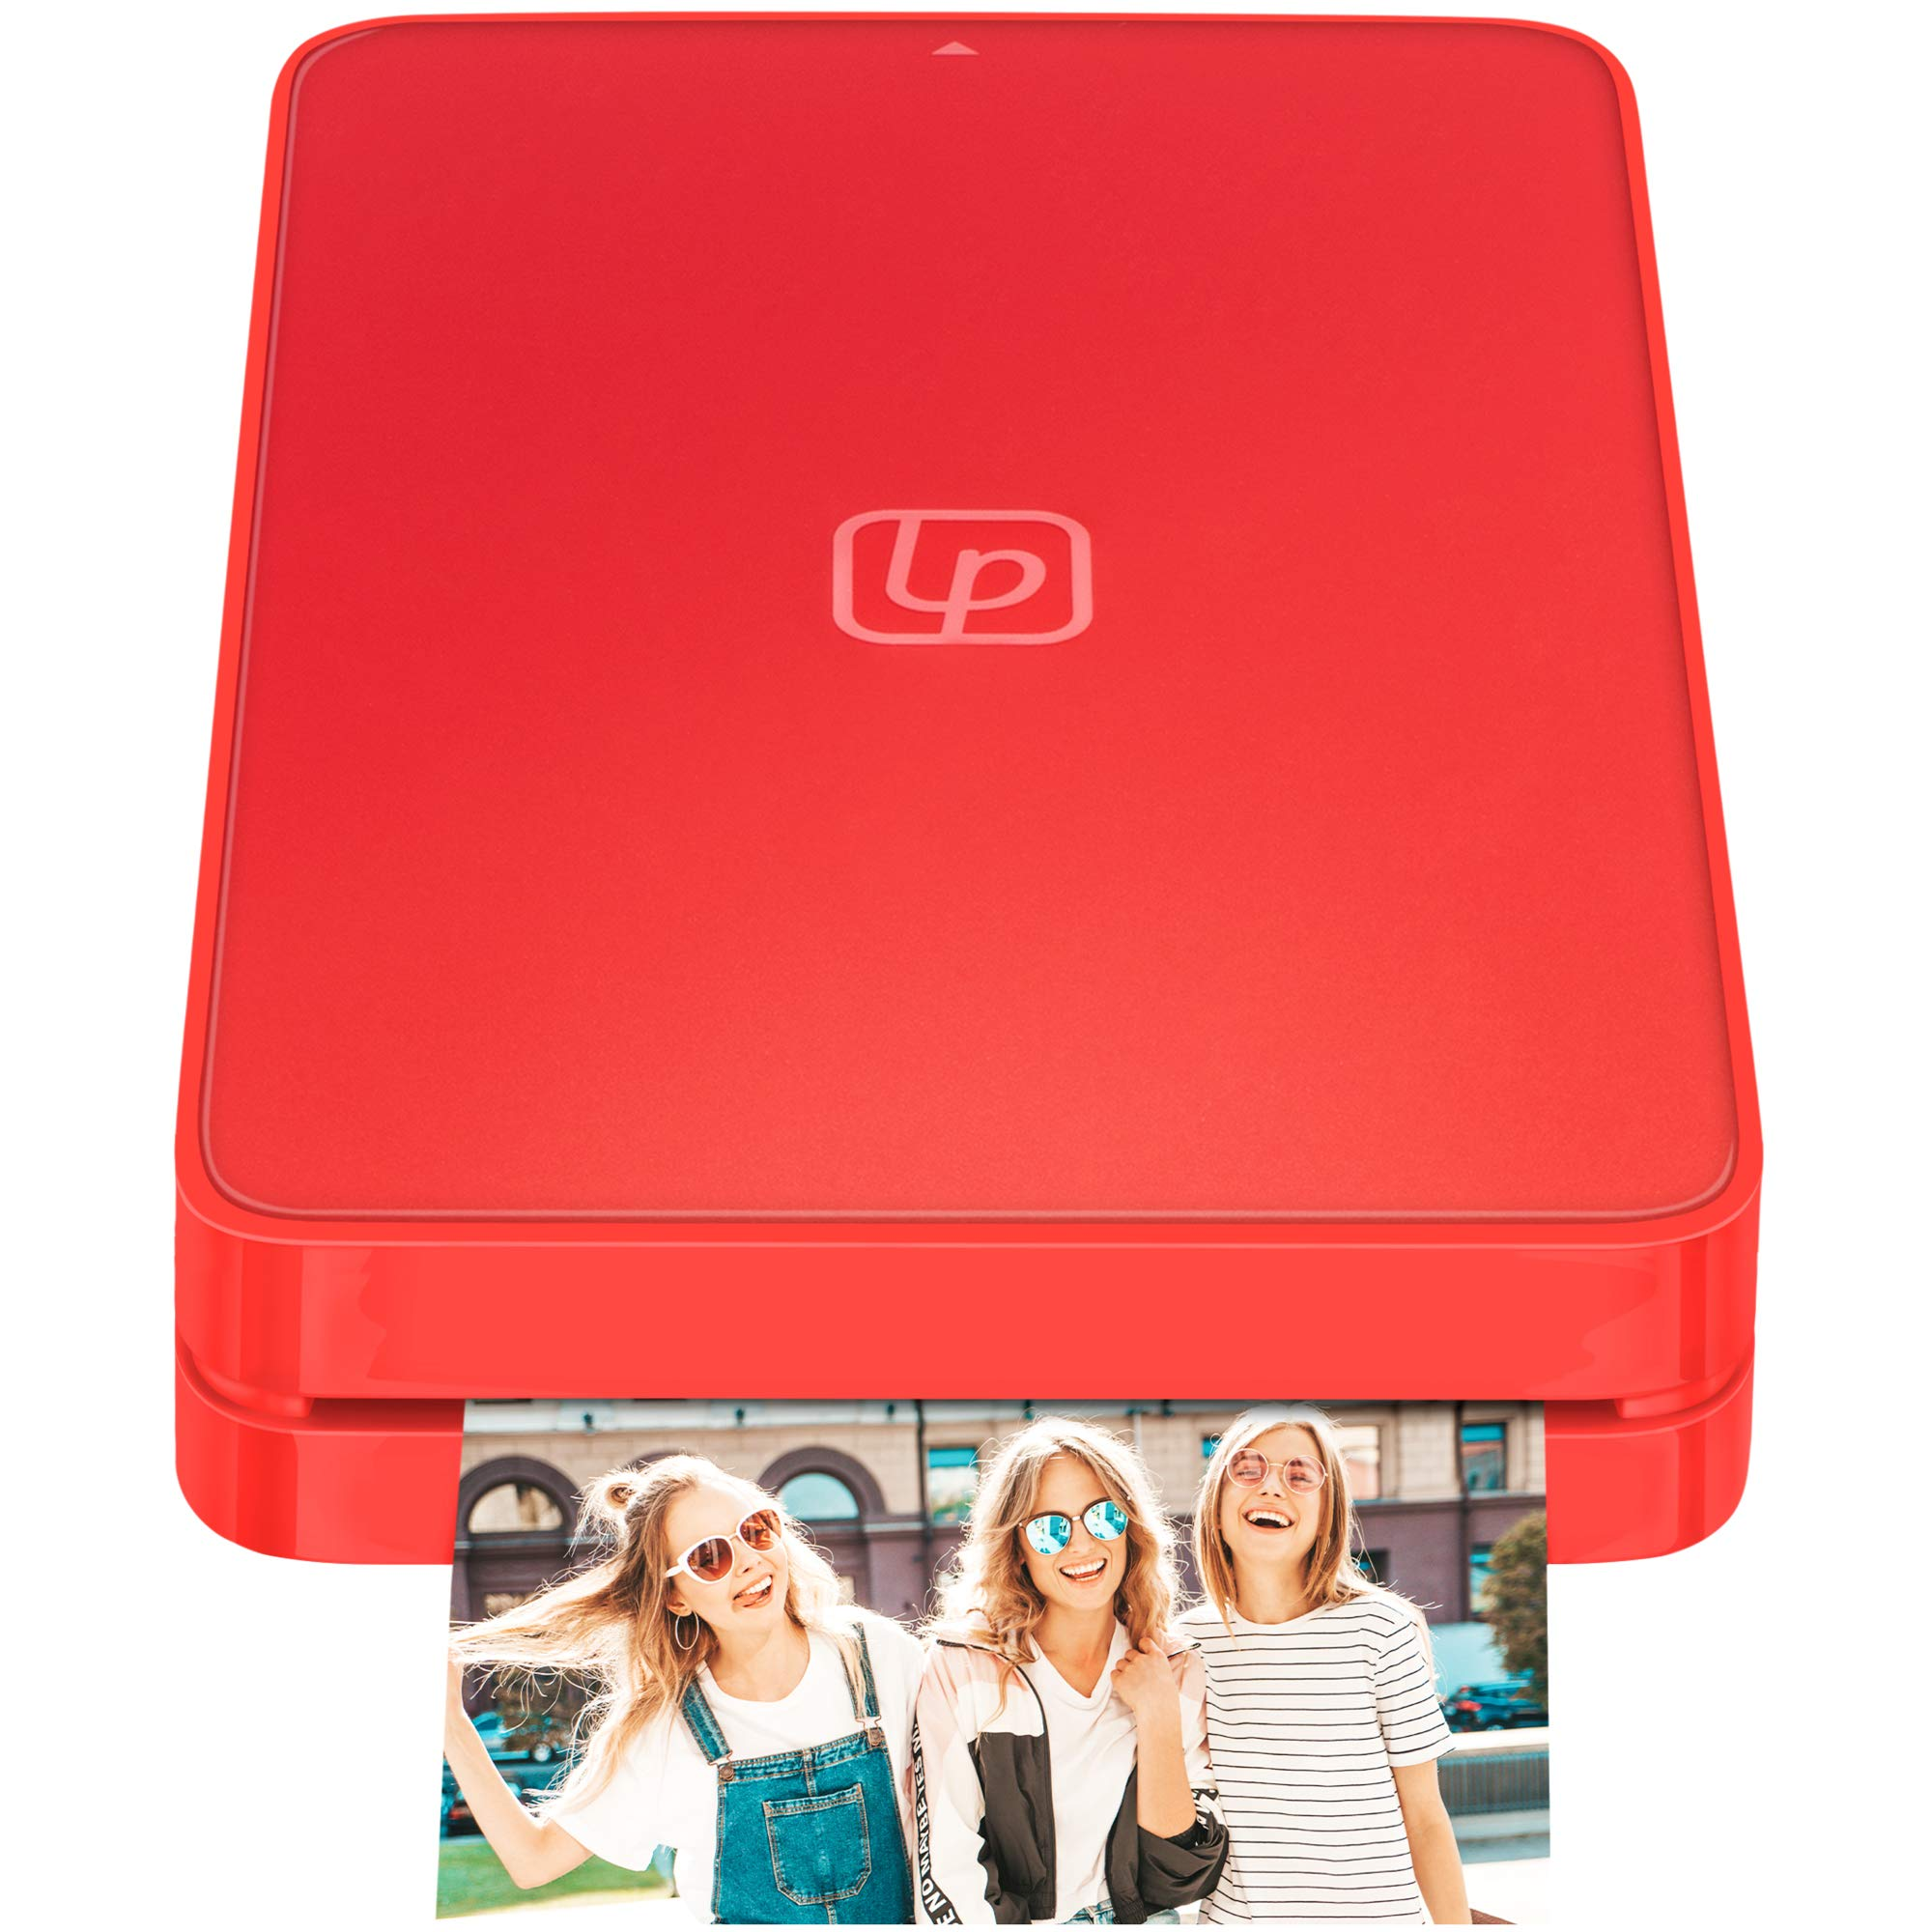 Lifeprint 2x3 Portable Photo and Video Printer for iPhone and Android. Make Your Photos Come to Life w/Augmented Reality - Red